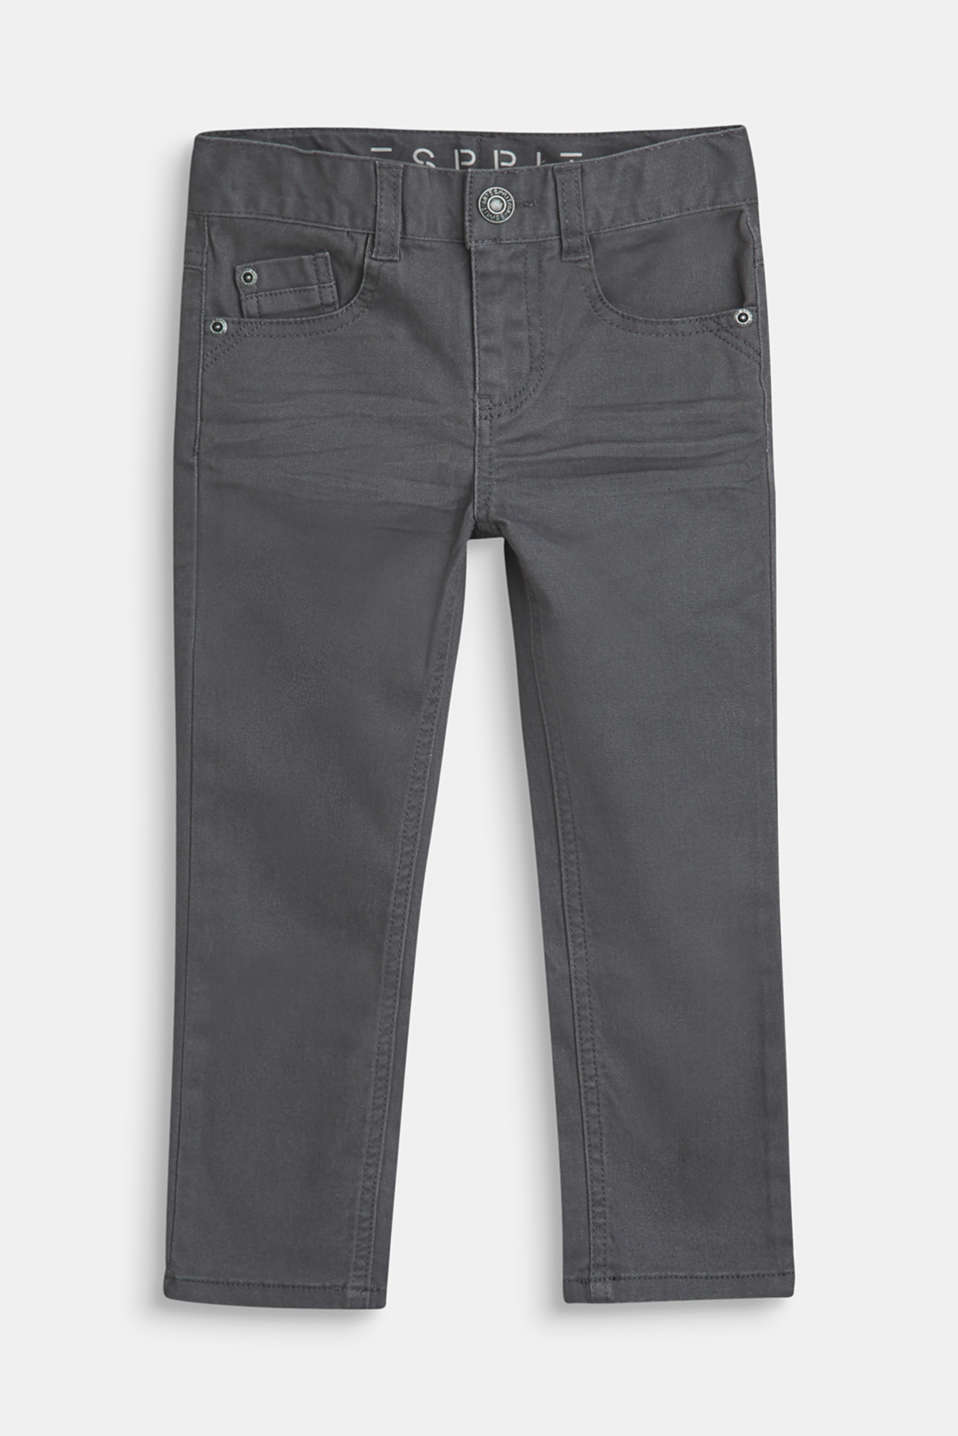 Esprit - Cotton stretch trousers with an adjustable waistband